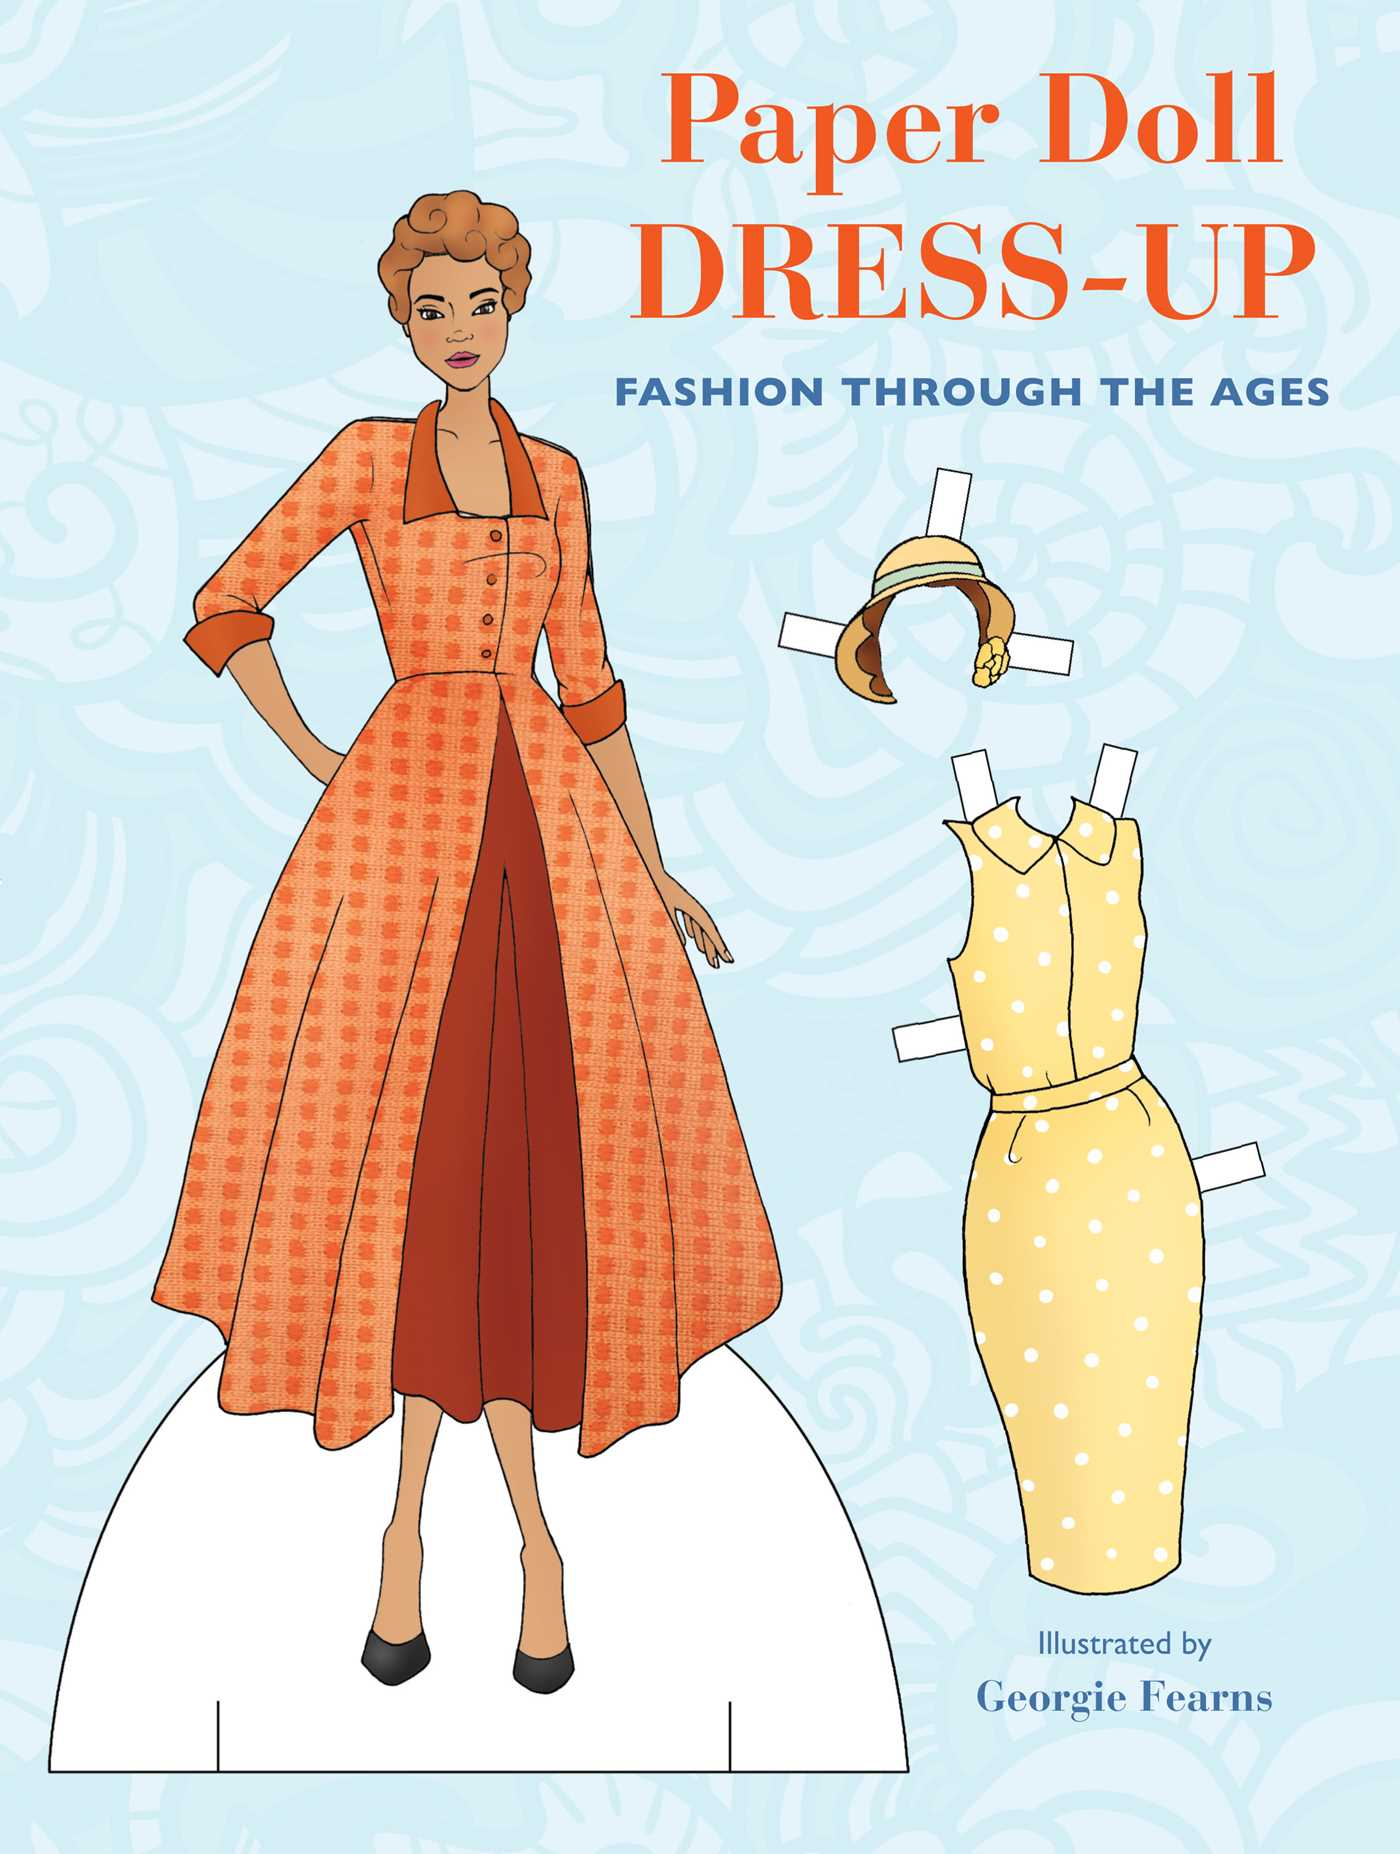 Paper Doll Dress Up Book by Georgie Fearns